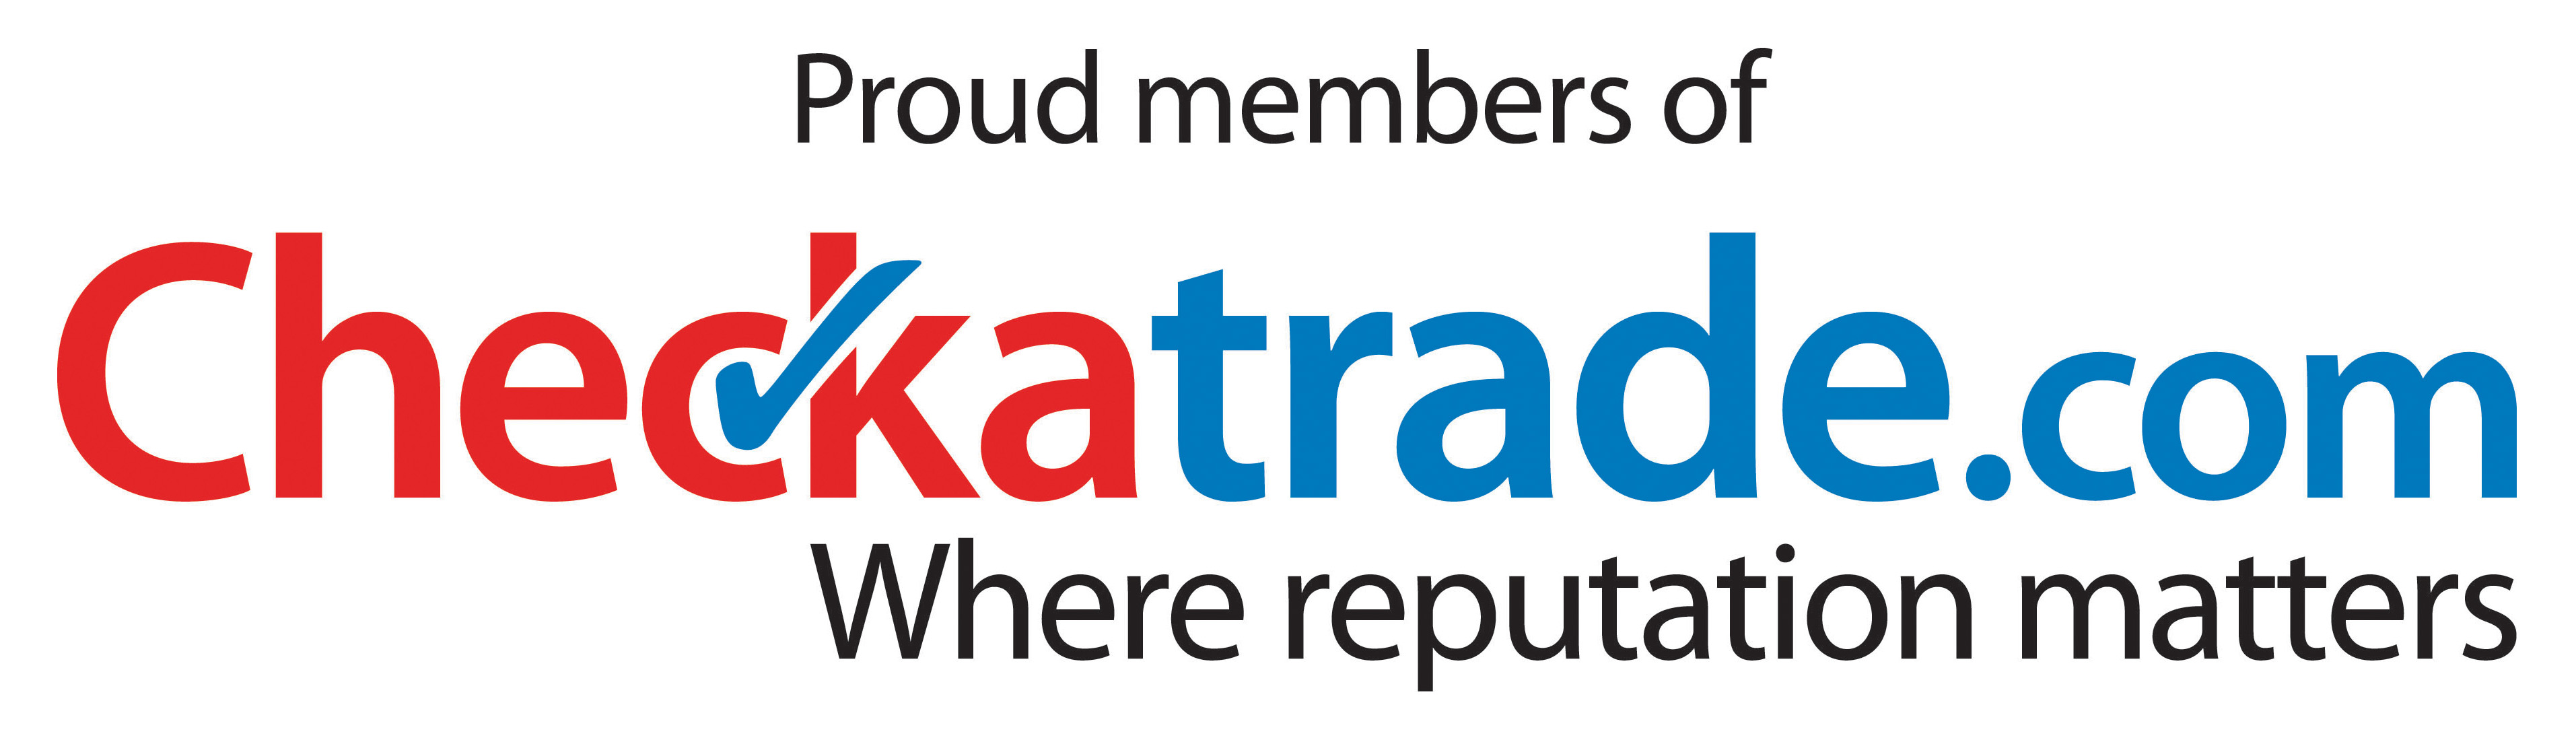 J.T.Pugh Construction & Renovation Ltd - Proud member of Checkatrade.com